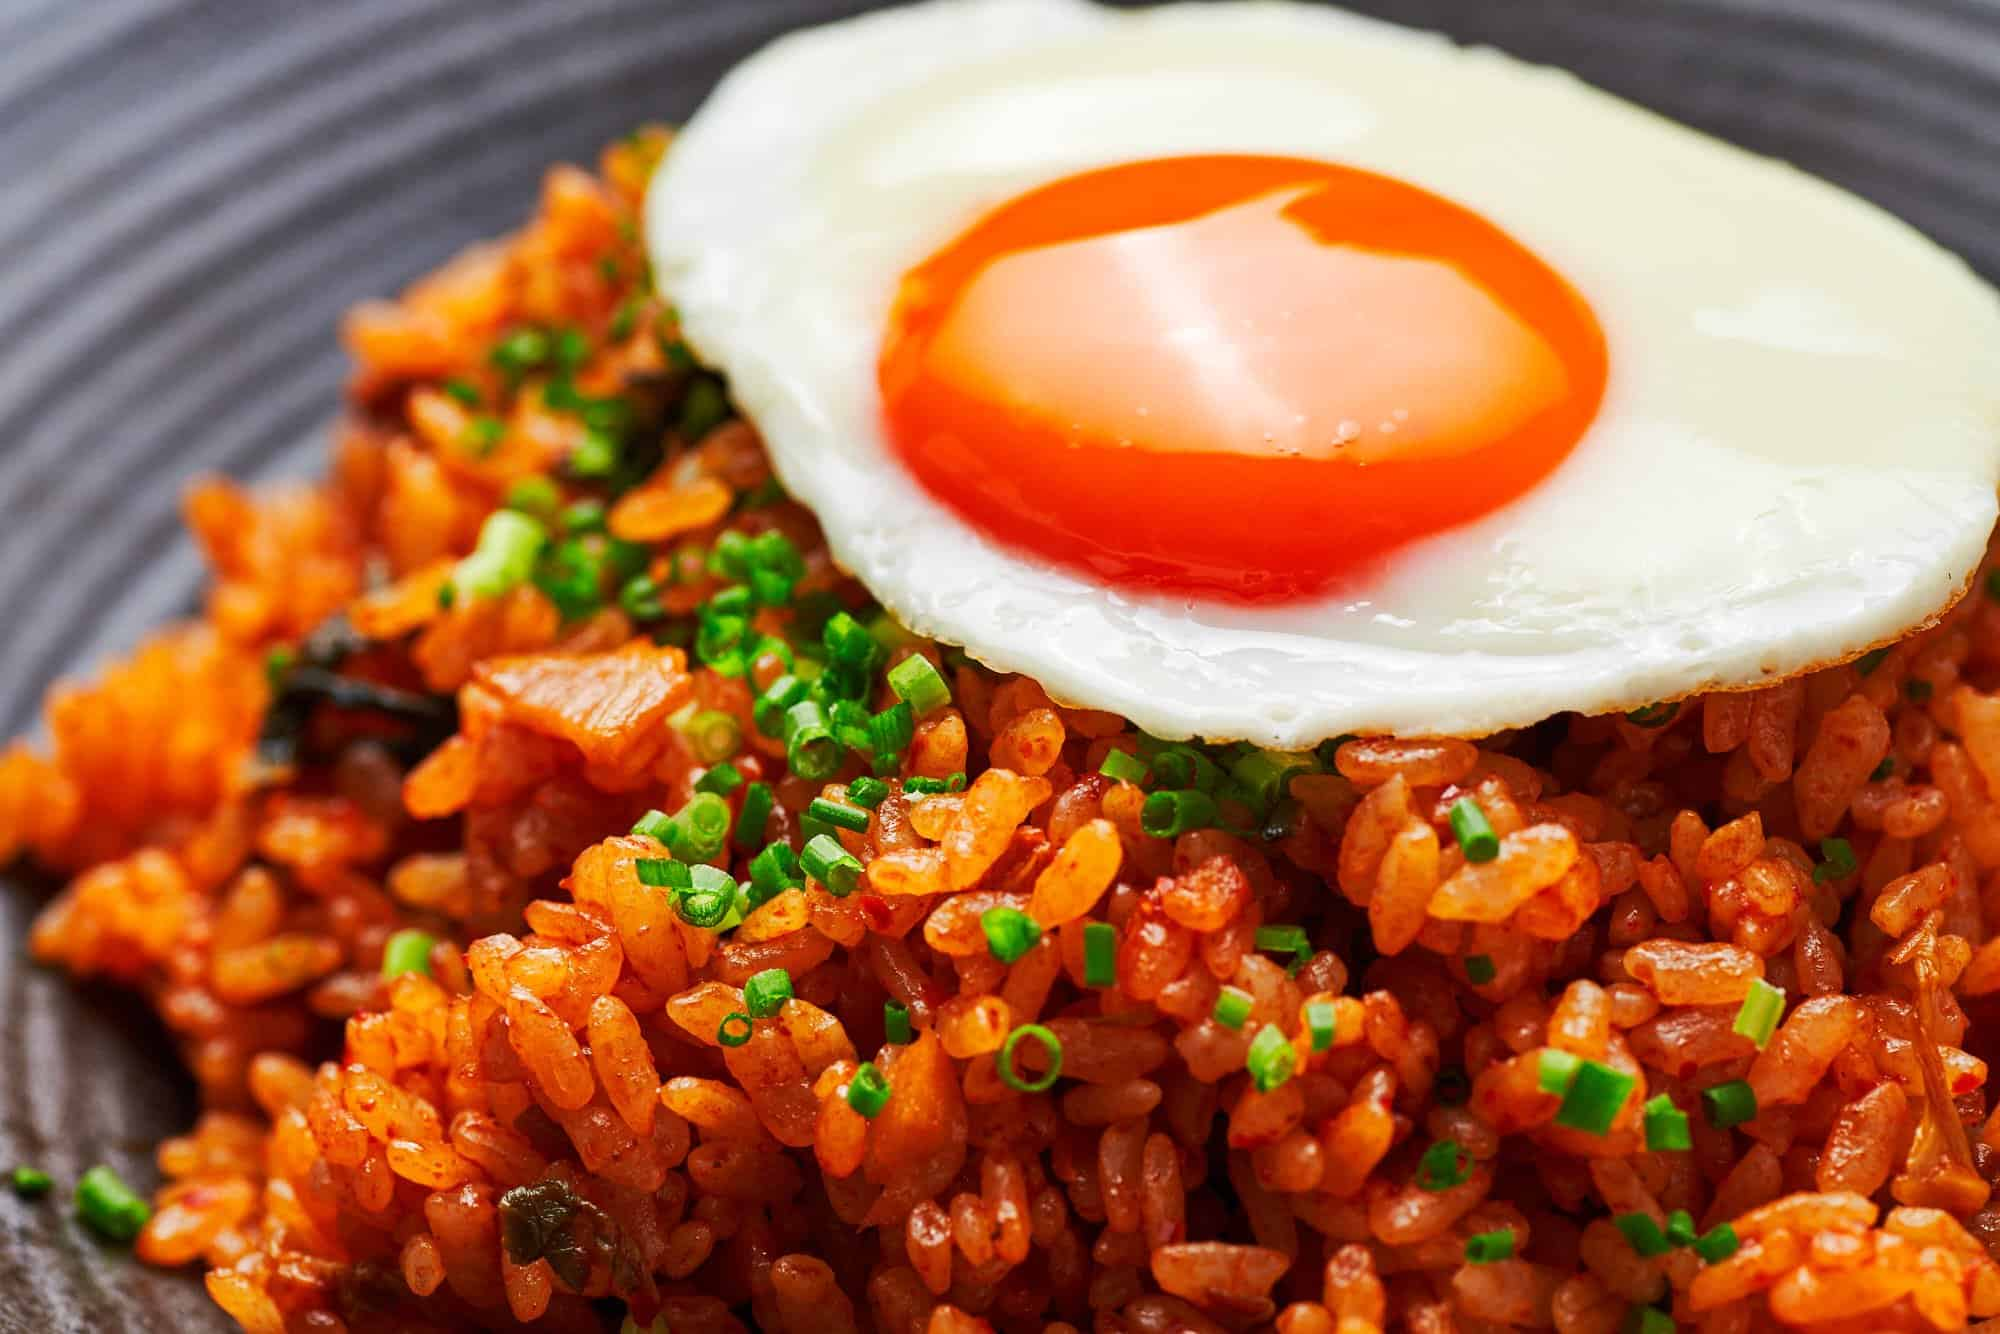 Sunny-side-up egg on top of a bowl of spicy kimchi fried rice, or kimchi bokkeumbap.